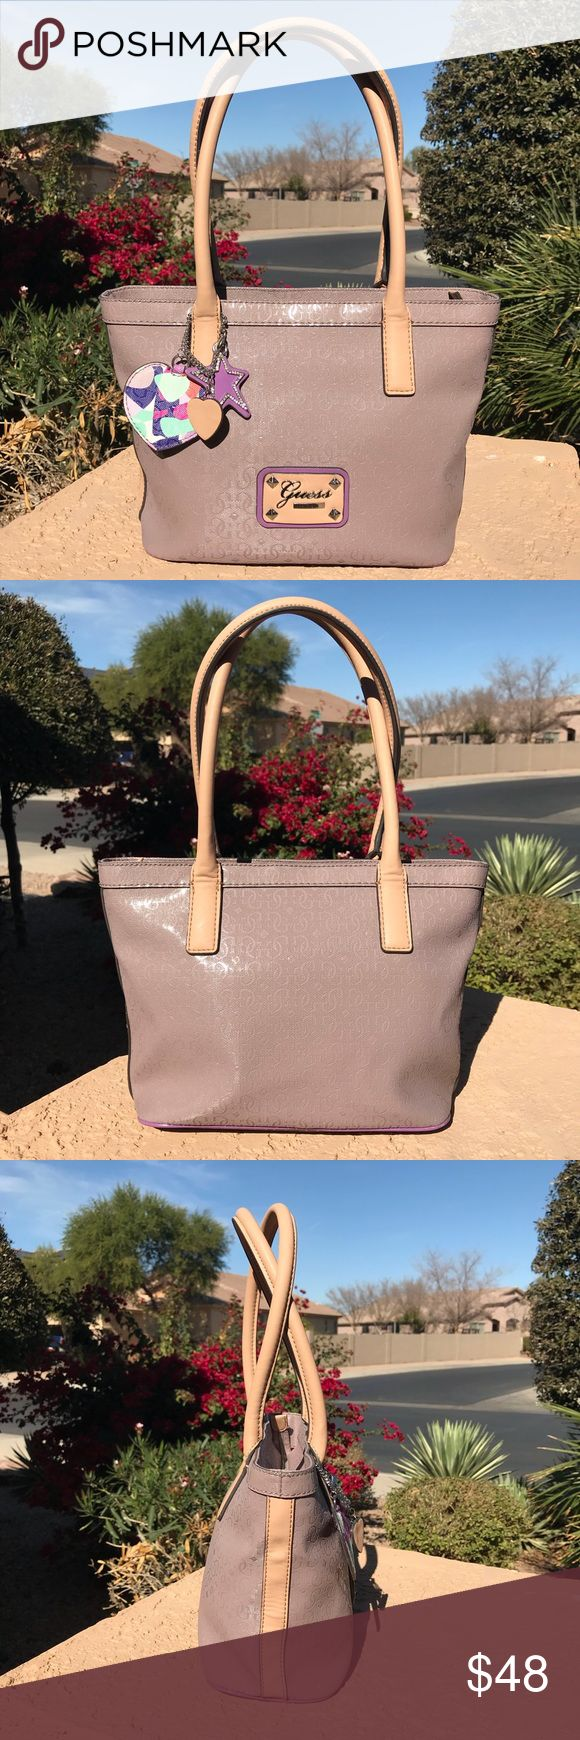 """Guess Airun Handbag Purse Taupe w/Charms Preowned GUESS Handbag is cute and versatile! MSRP $98.  12"""" W x 9"""" H x 4-1/2"""" D—Very roomy!  Handles have 8"""" drop. Zip closure, silver-tone hardware, logo exterior. Guess signature plaque has super light scratches. Decorative charms have blemish on back, as noted in photo. Colorful interior fabric in good condition; one zip pocket, 3 slip pockets.  Pre-owned condition w/light scratches and pen marks. Message me with any other questions & thank you…"""